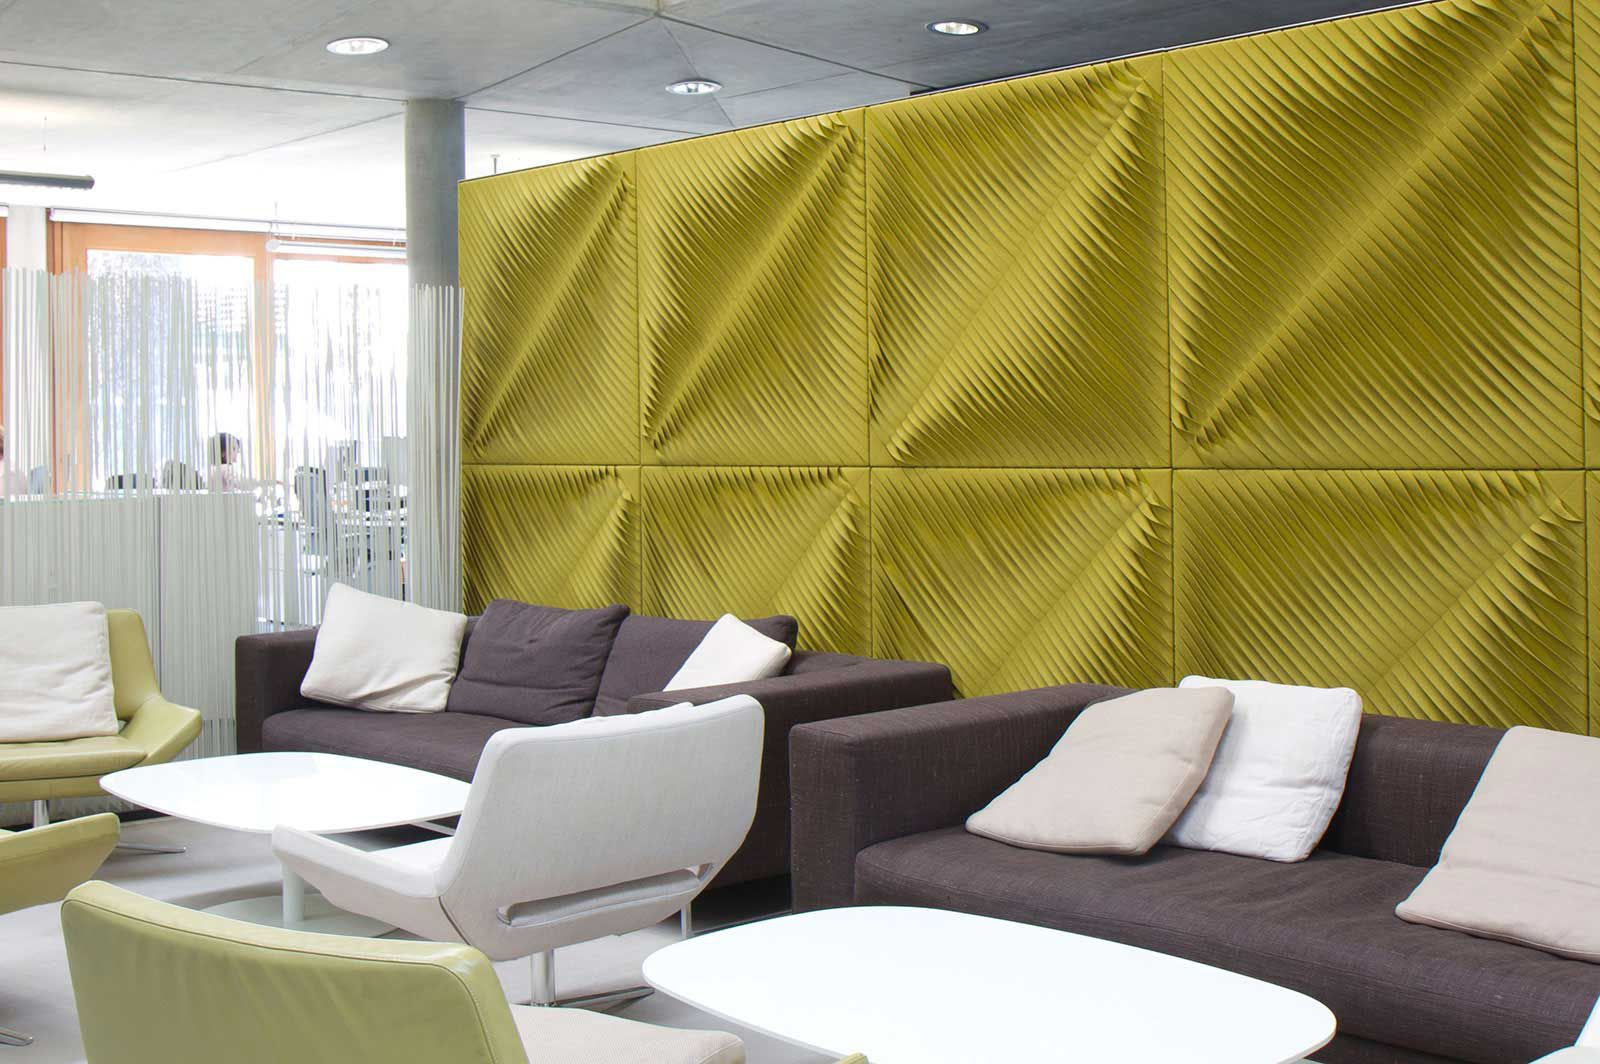 Fabric decorative panel / for partition walls / 3D - LAWN TENNIS ...